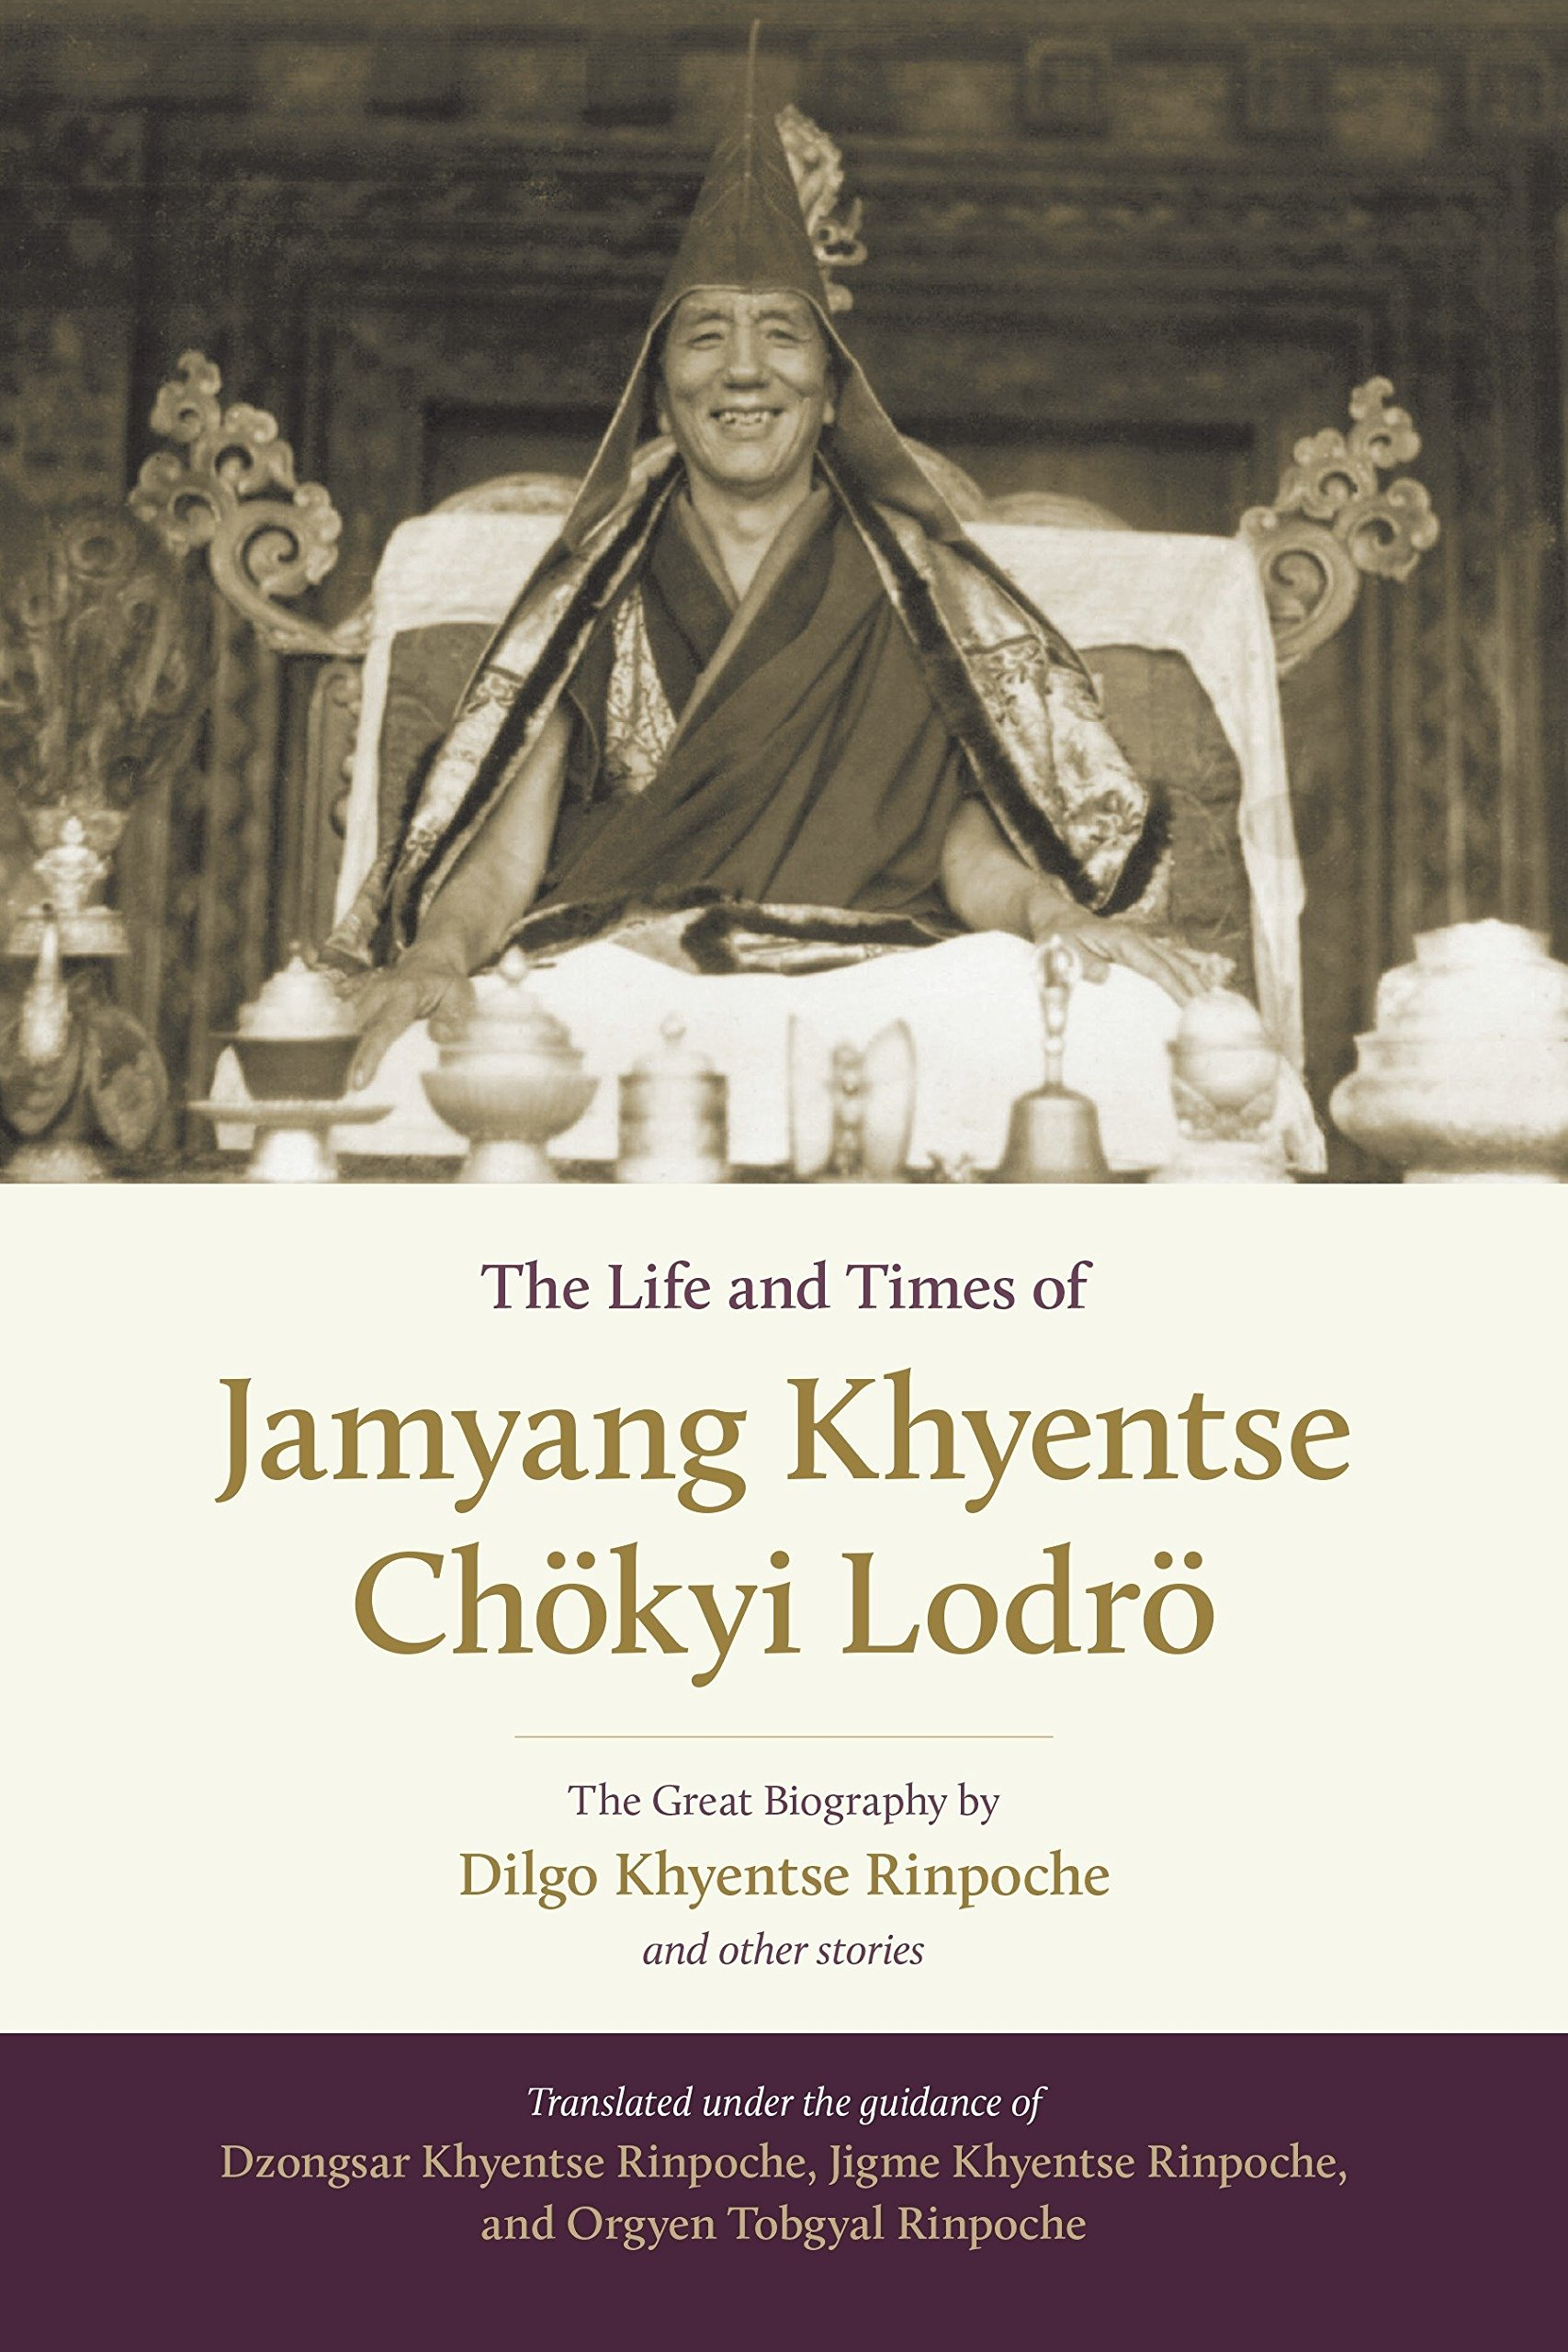 Dilgo Life and Times of Jamyang cover art